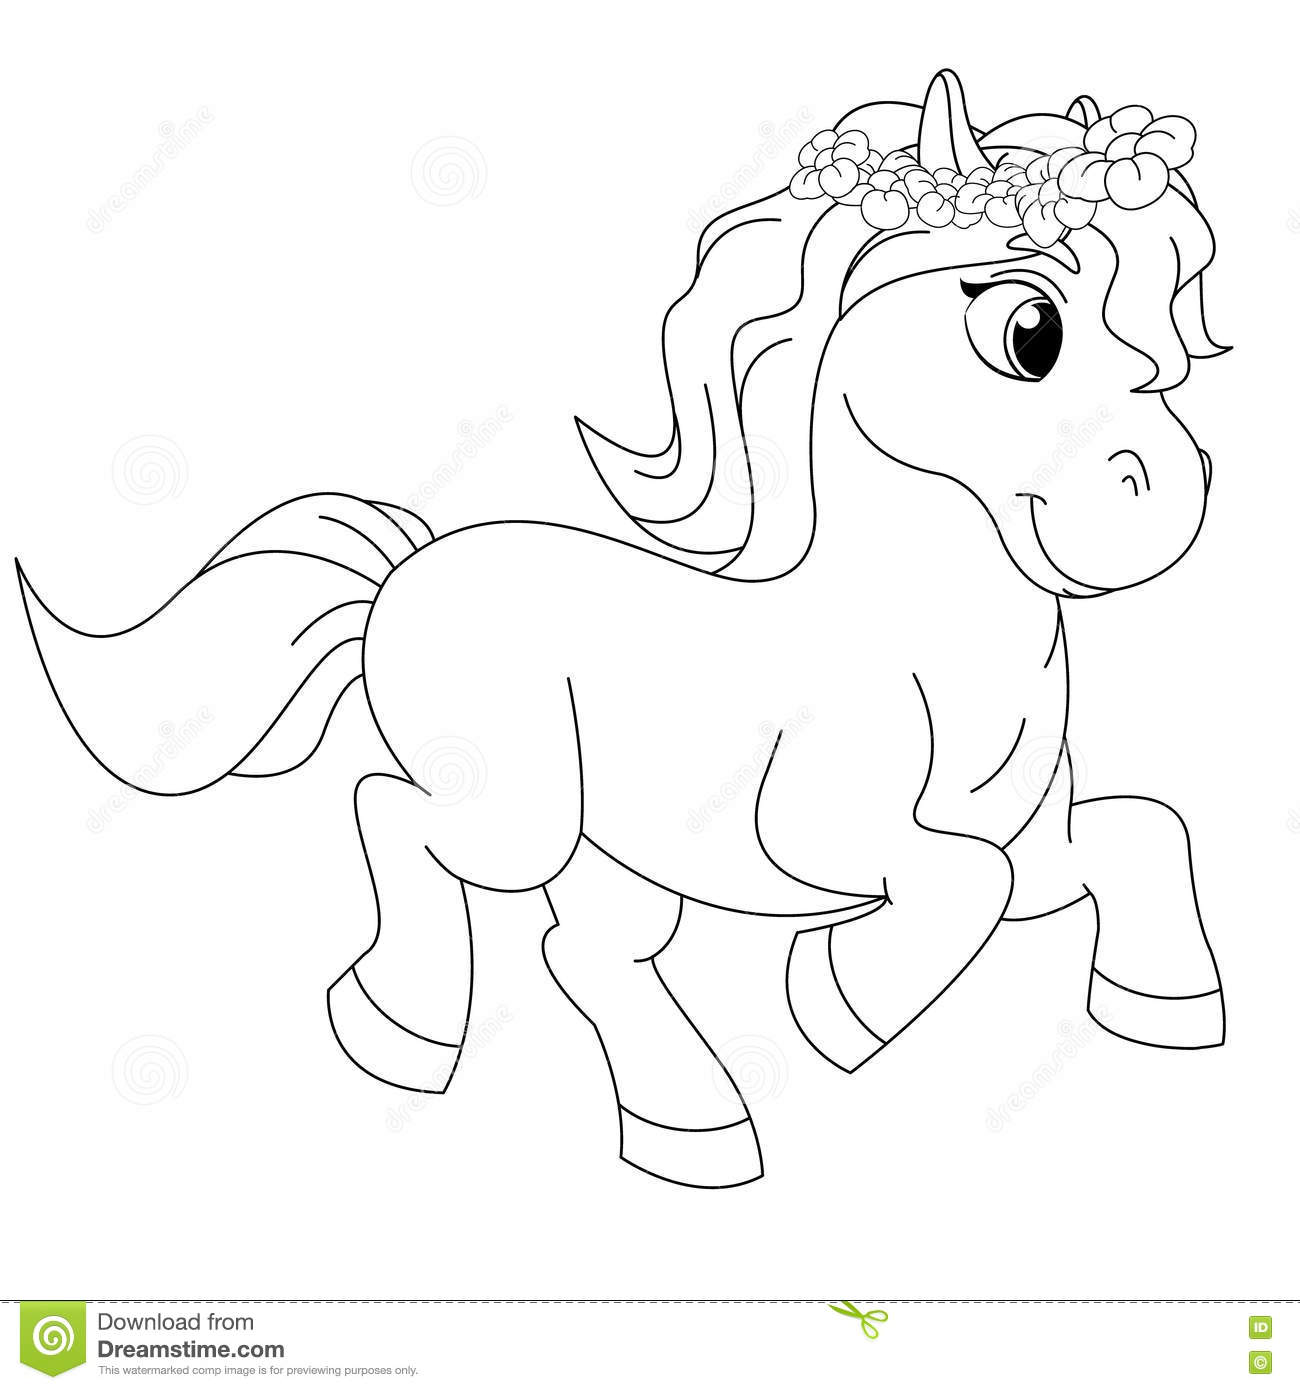 Fairytale pony coloring book page stock vector illustration of